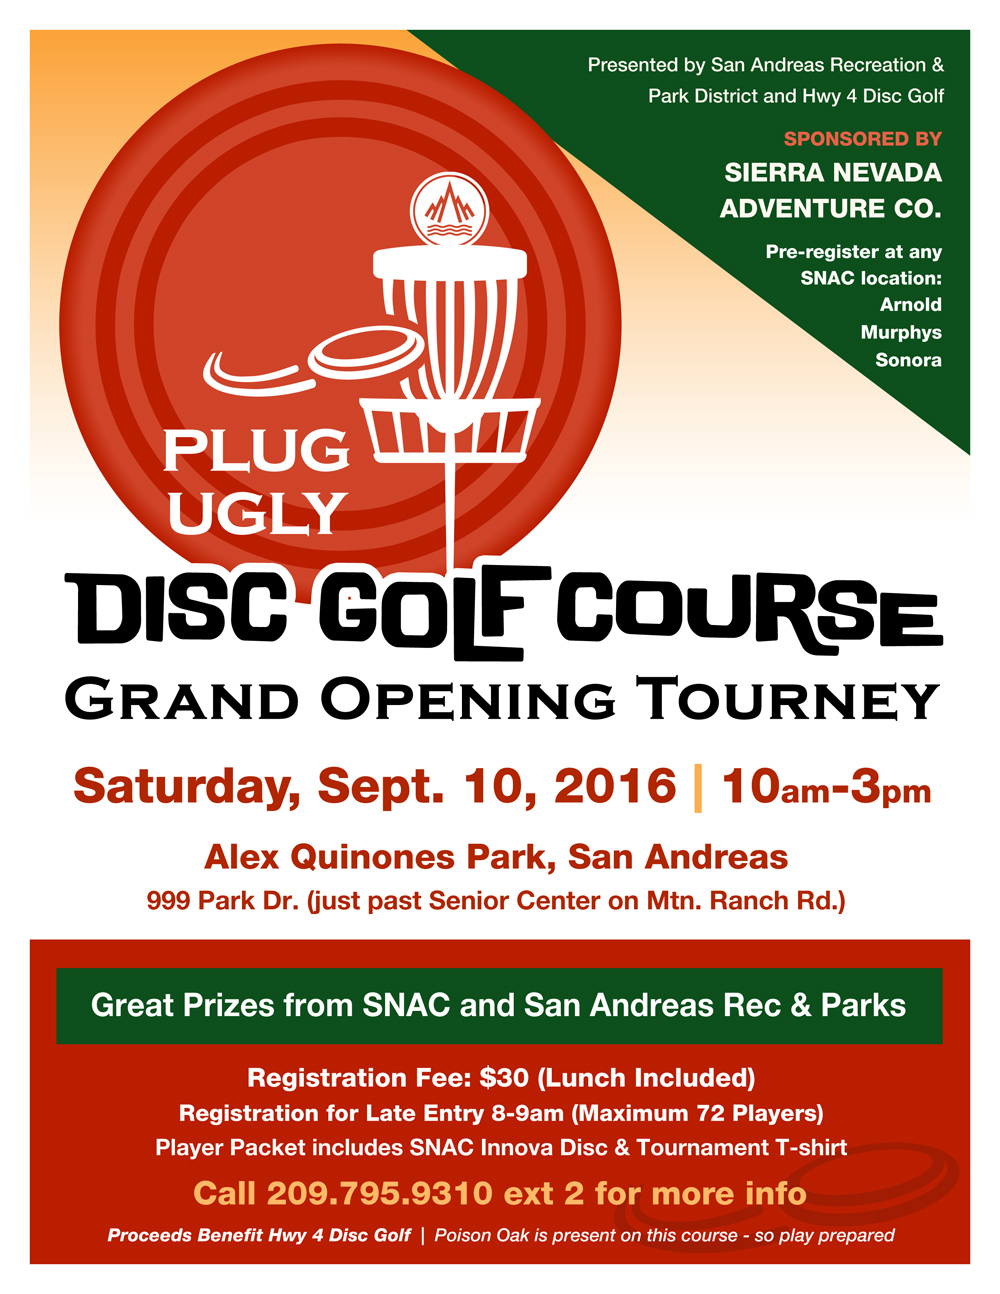 Plug Ugly Disc Golf Course Grand Opening Tourney!